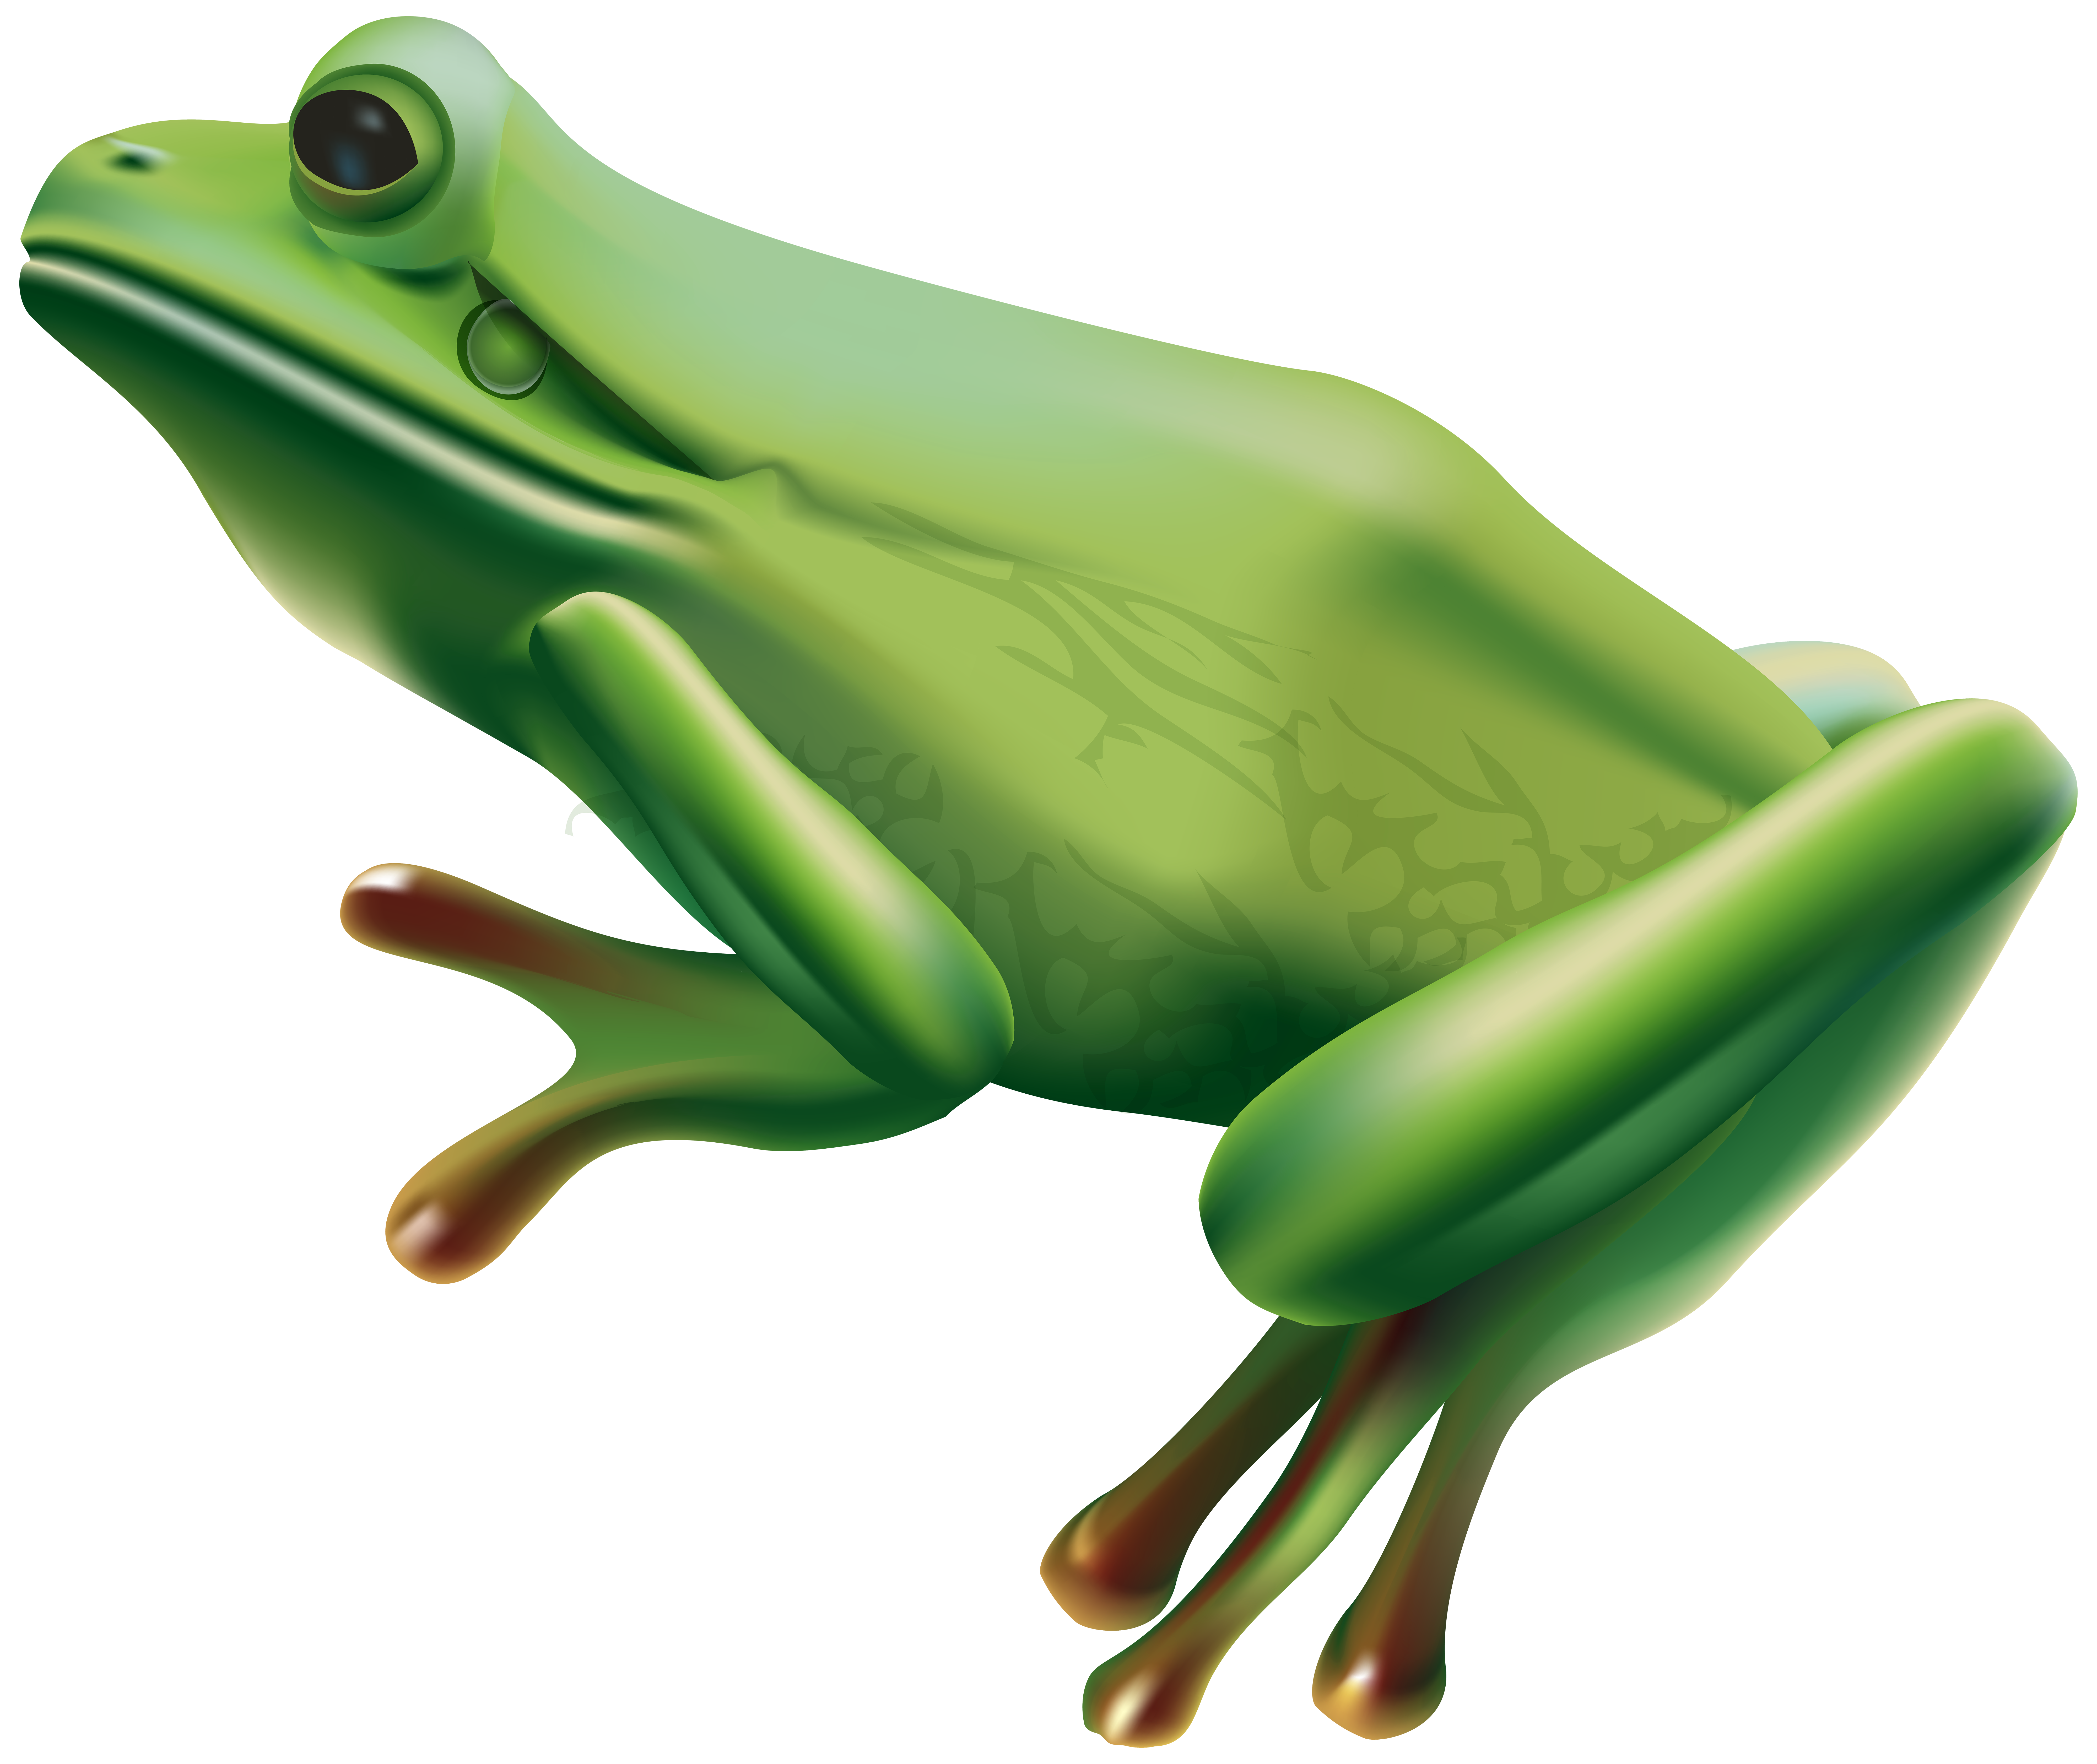 Png transparent clip art. Toad clipart colorful frog